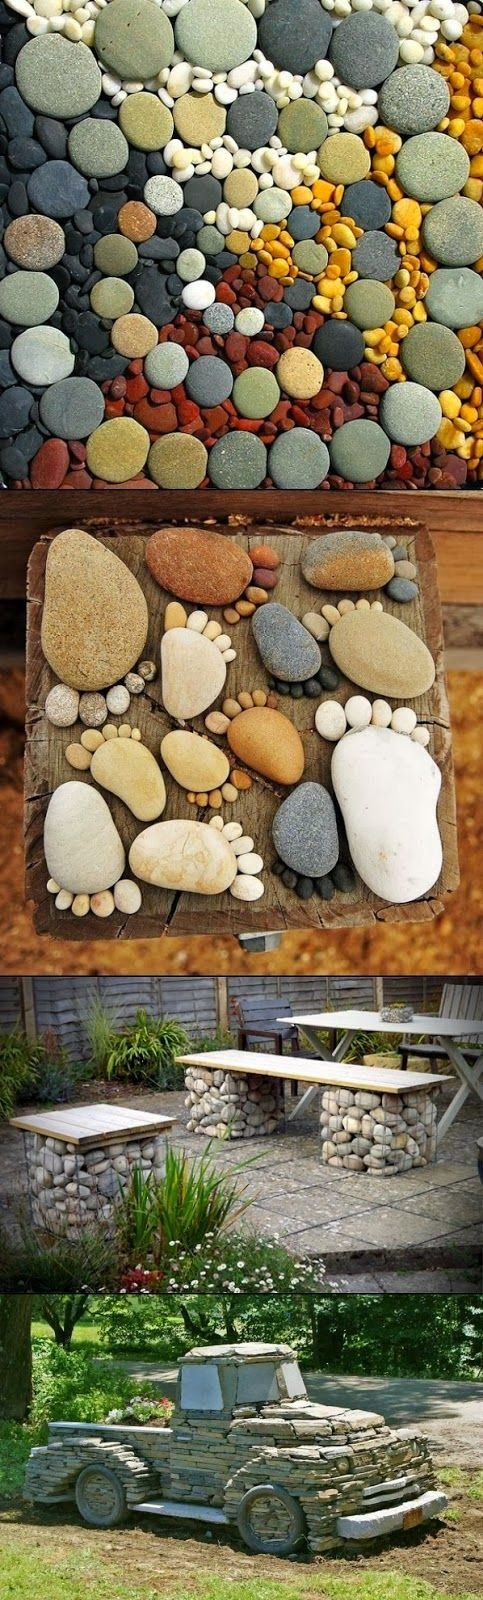 pietre decorative pentru gradina Decorative stone garden landscaping ideas 9